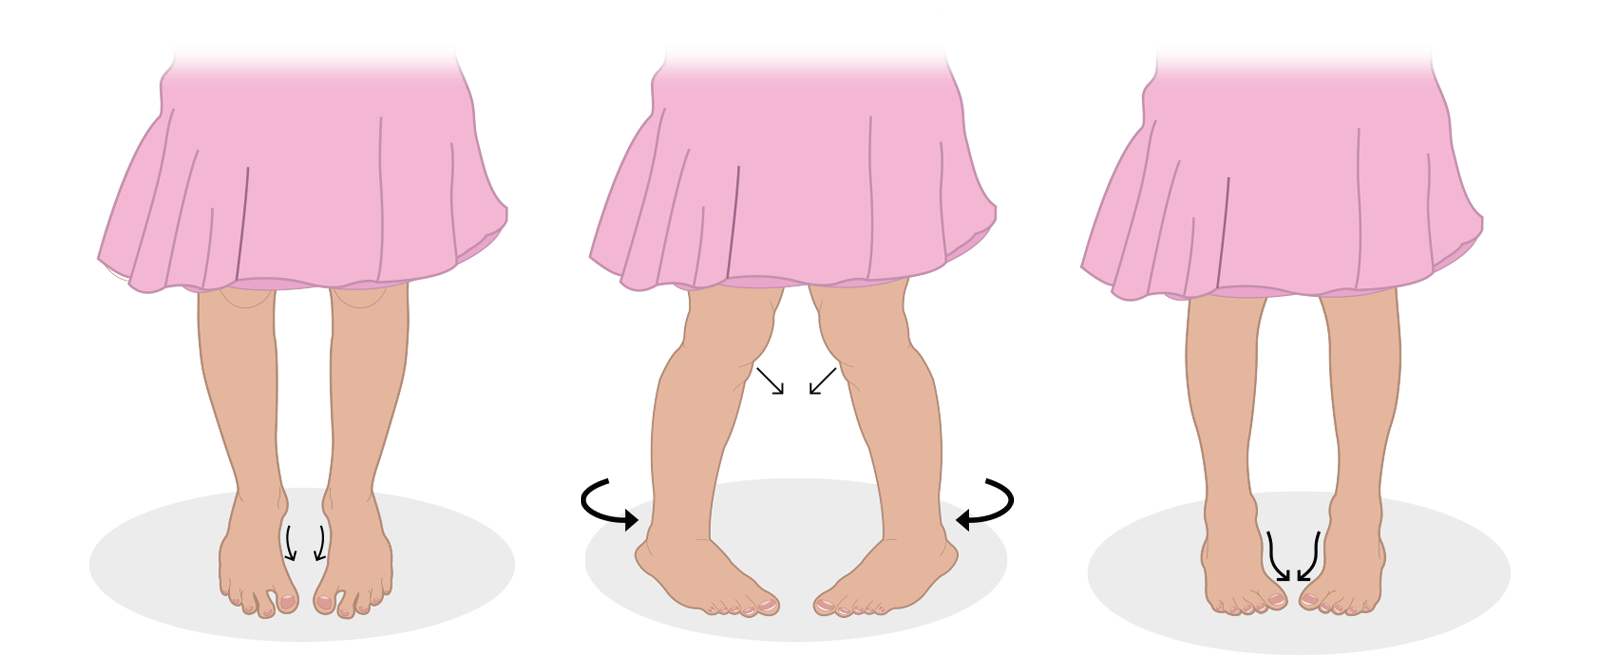 https://dubaipodiatry.com/wp-content/uploads/2021/09/Slider-New-Images_Intoeing-1.png